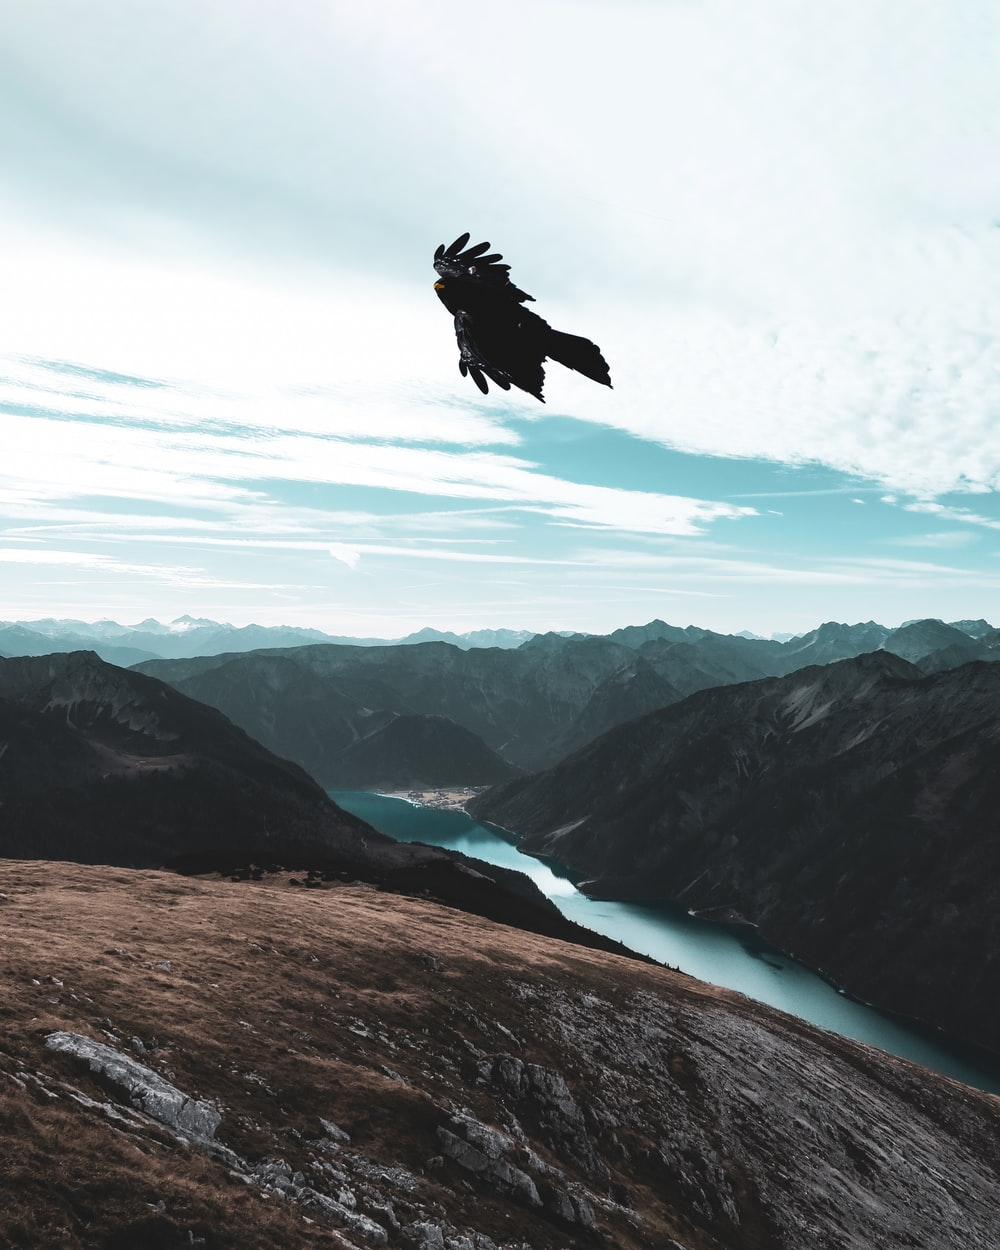 black bird in flight over mountains